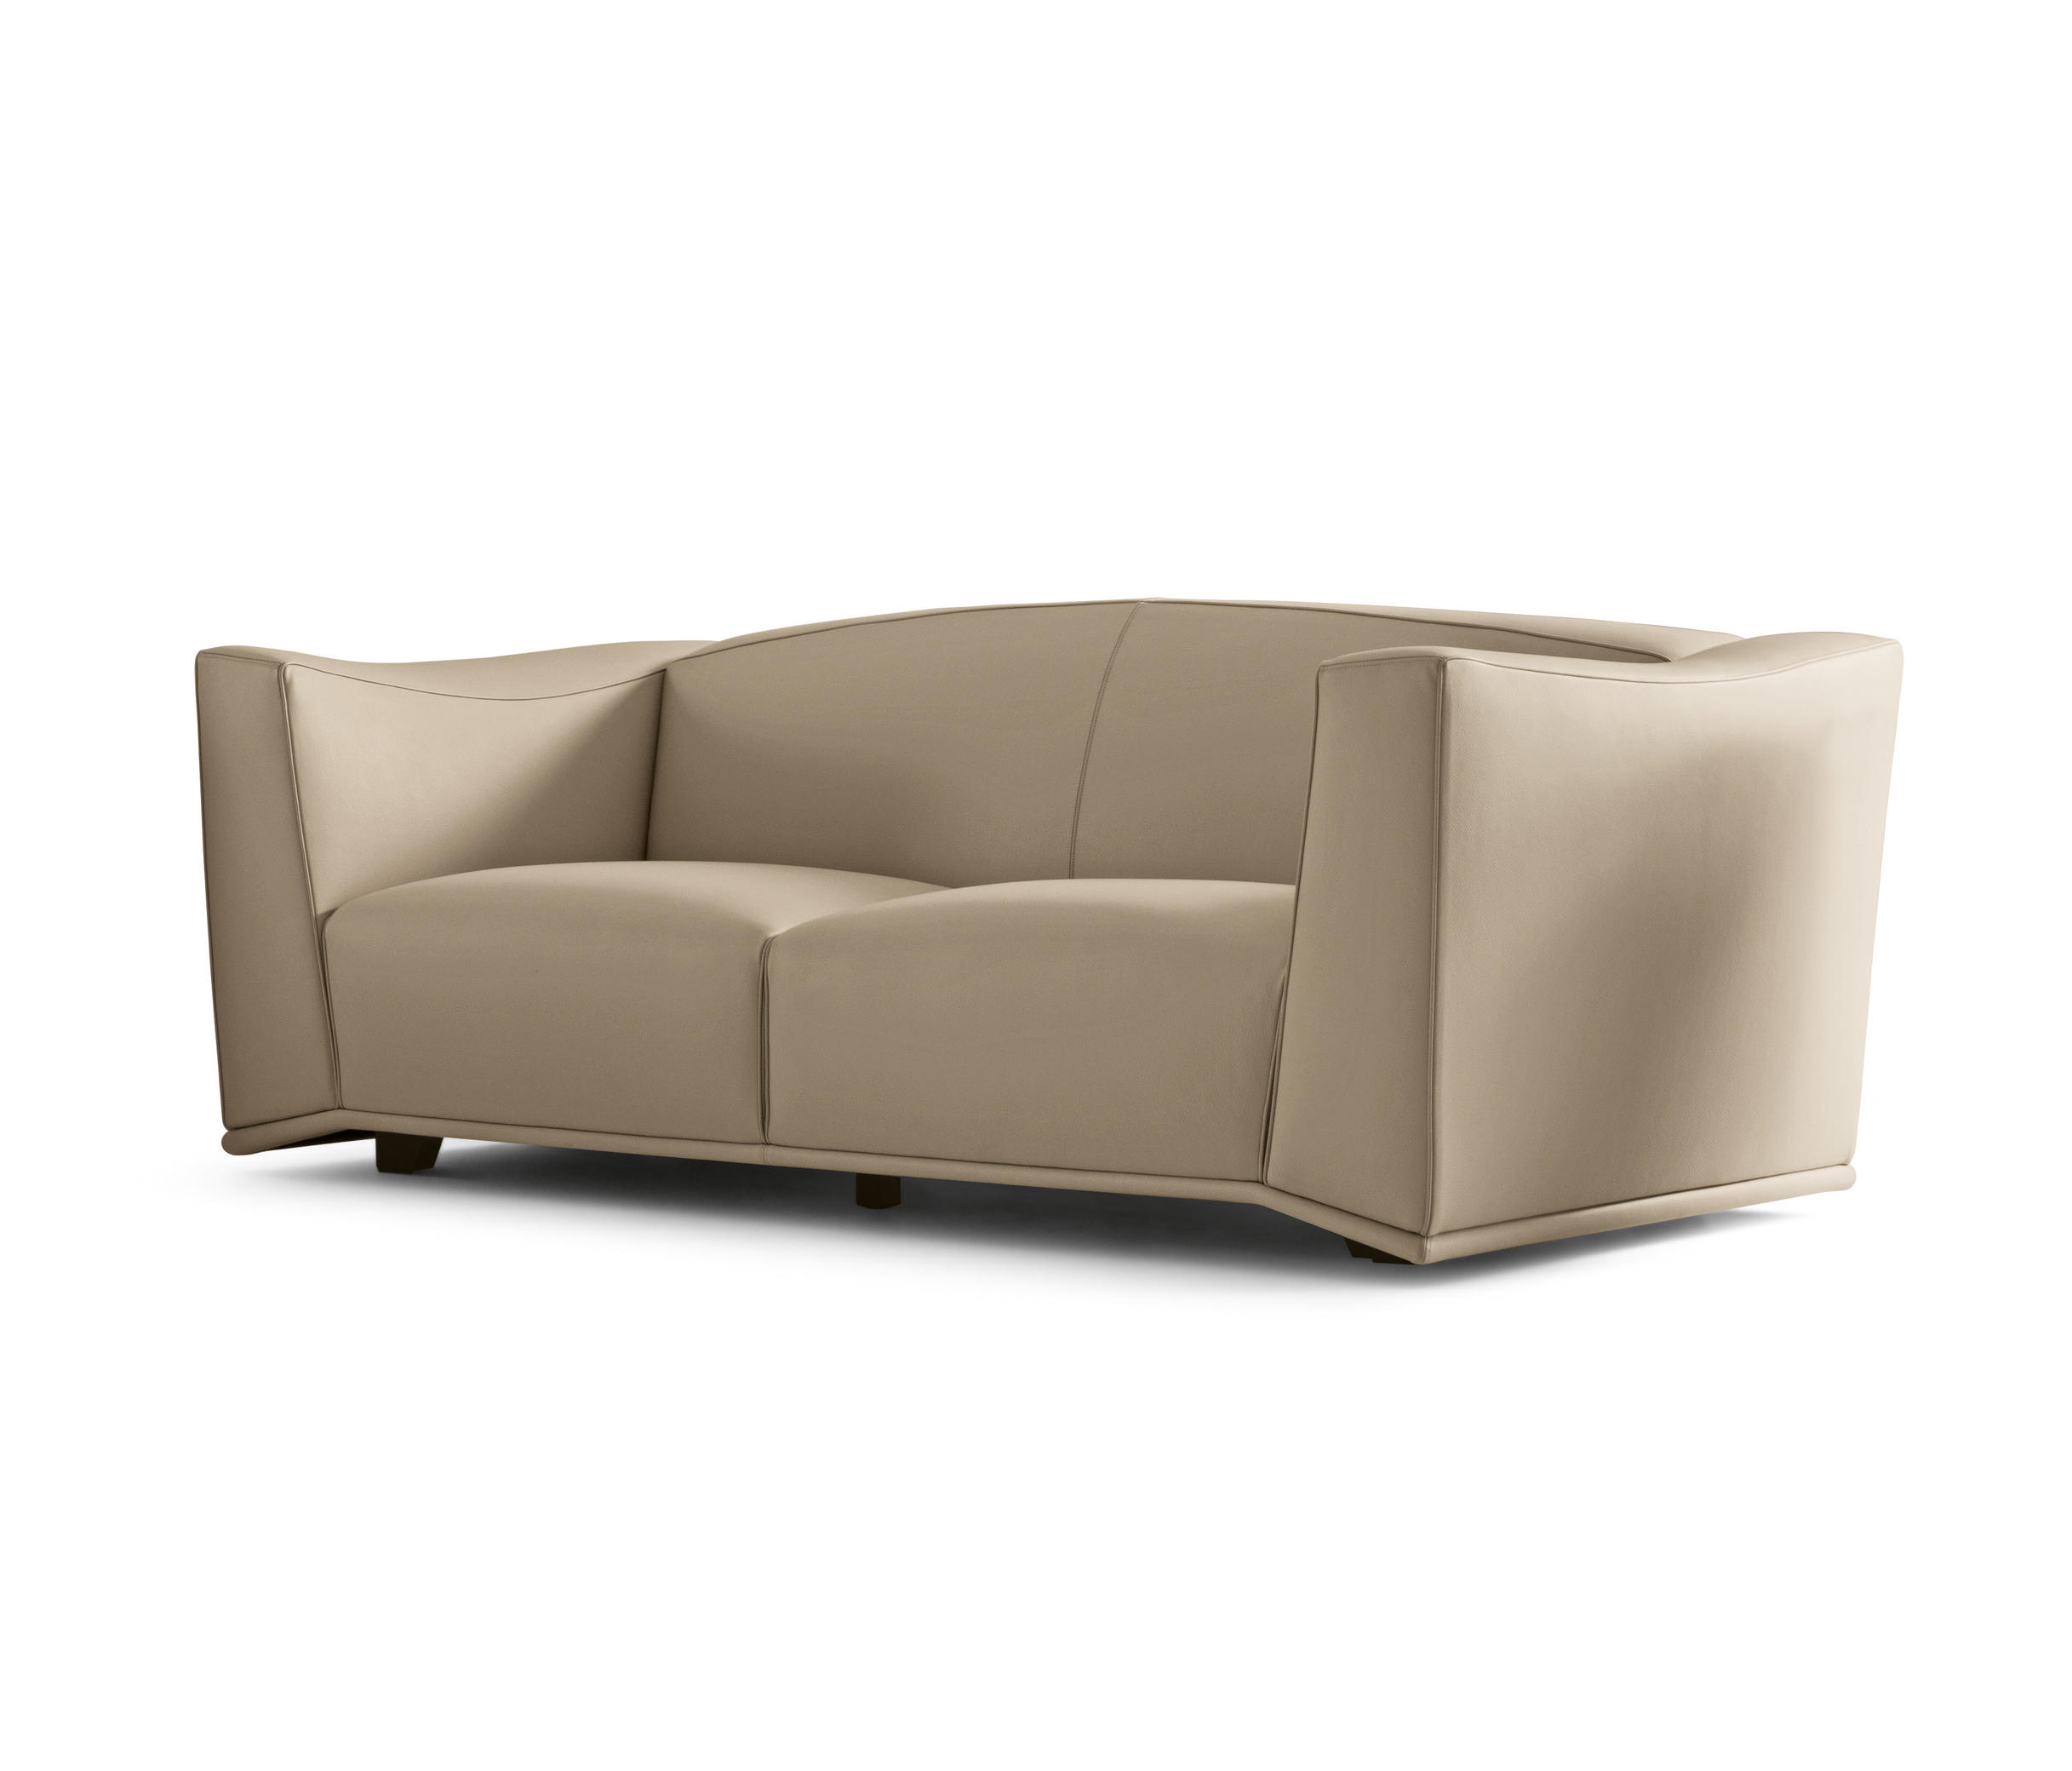 MOULD SOFA Lounge sofas from Gior ti